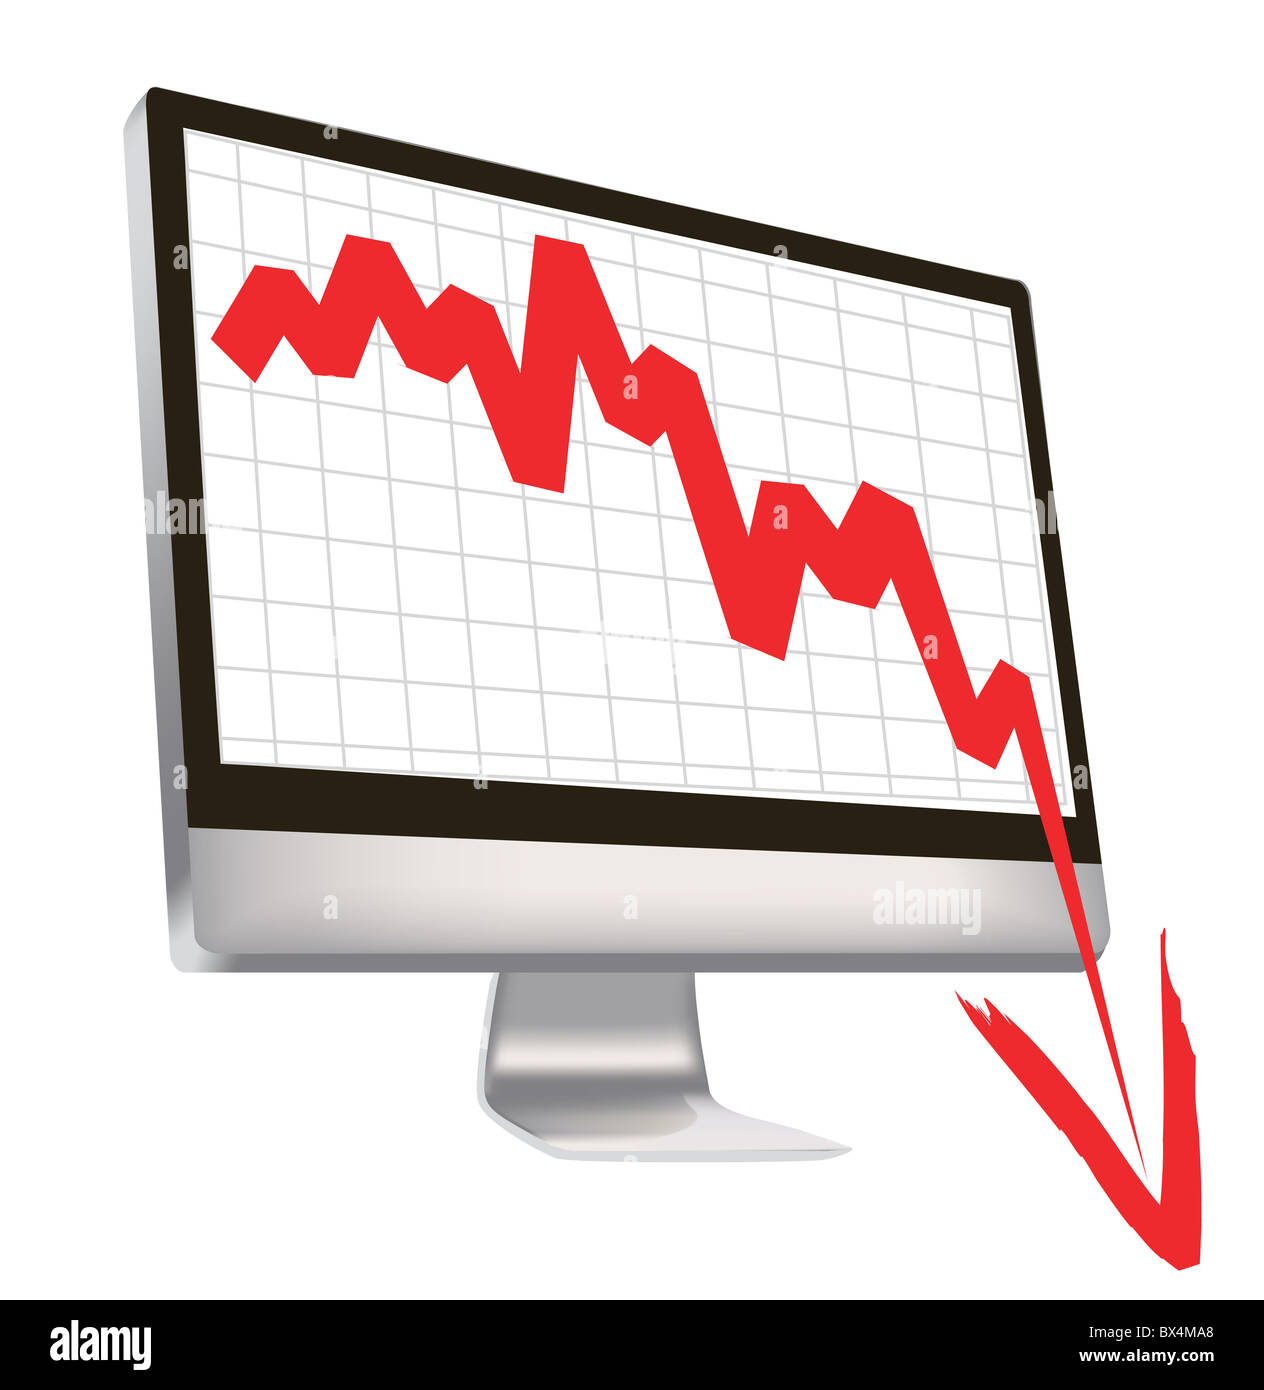 illustration of economic crisis, with red arrow break outs of computer monitor. - Stock Image